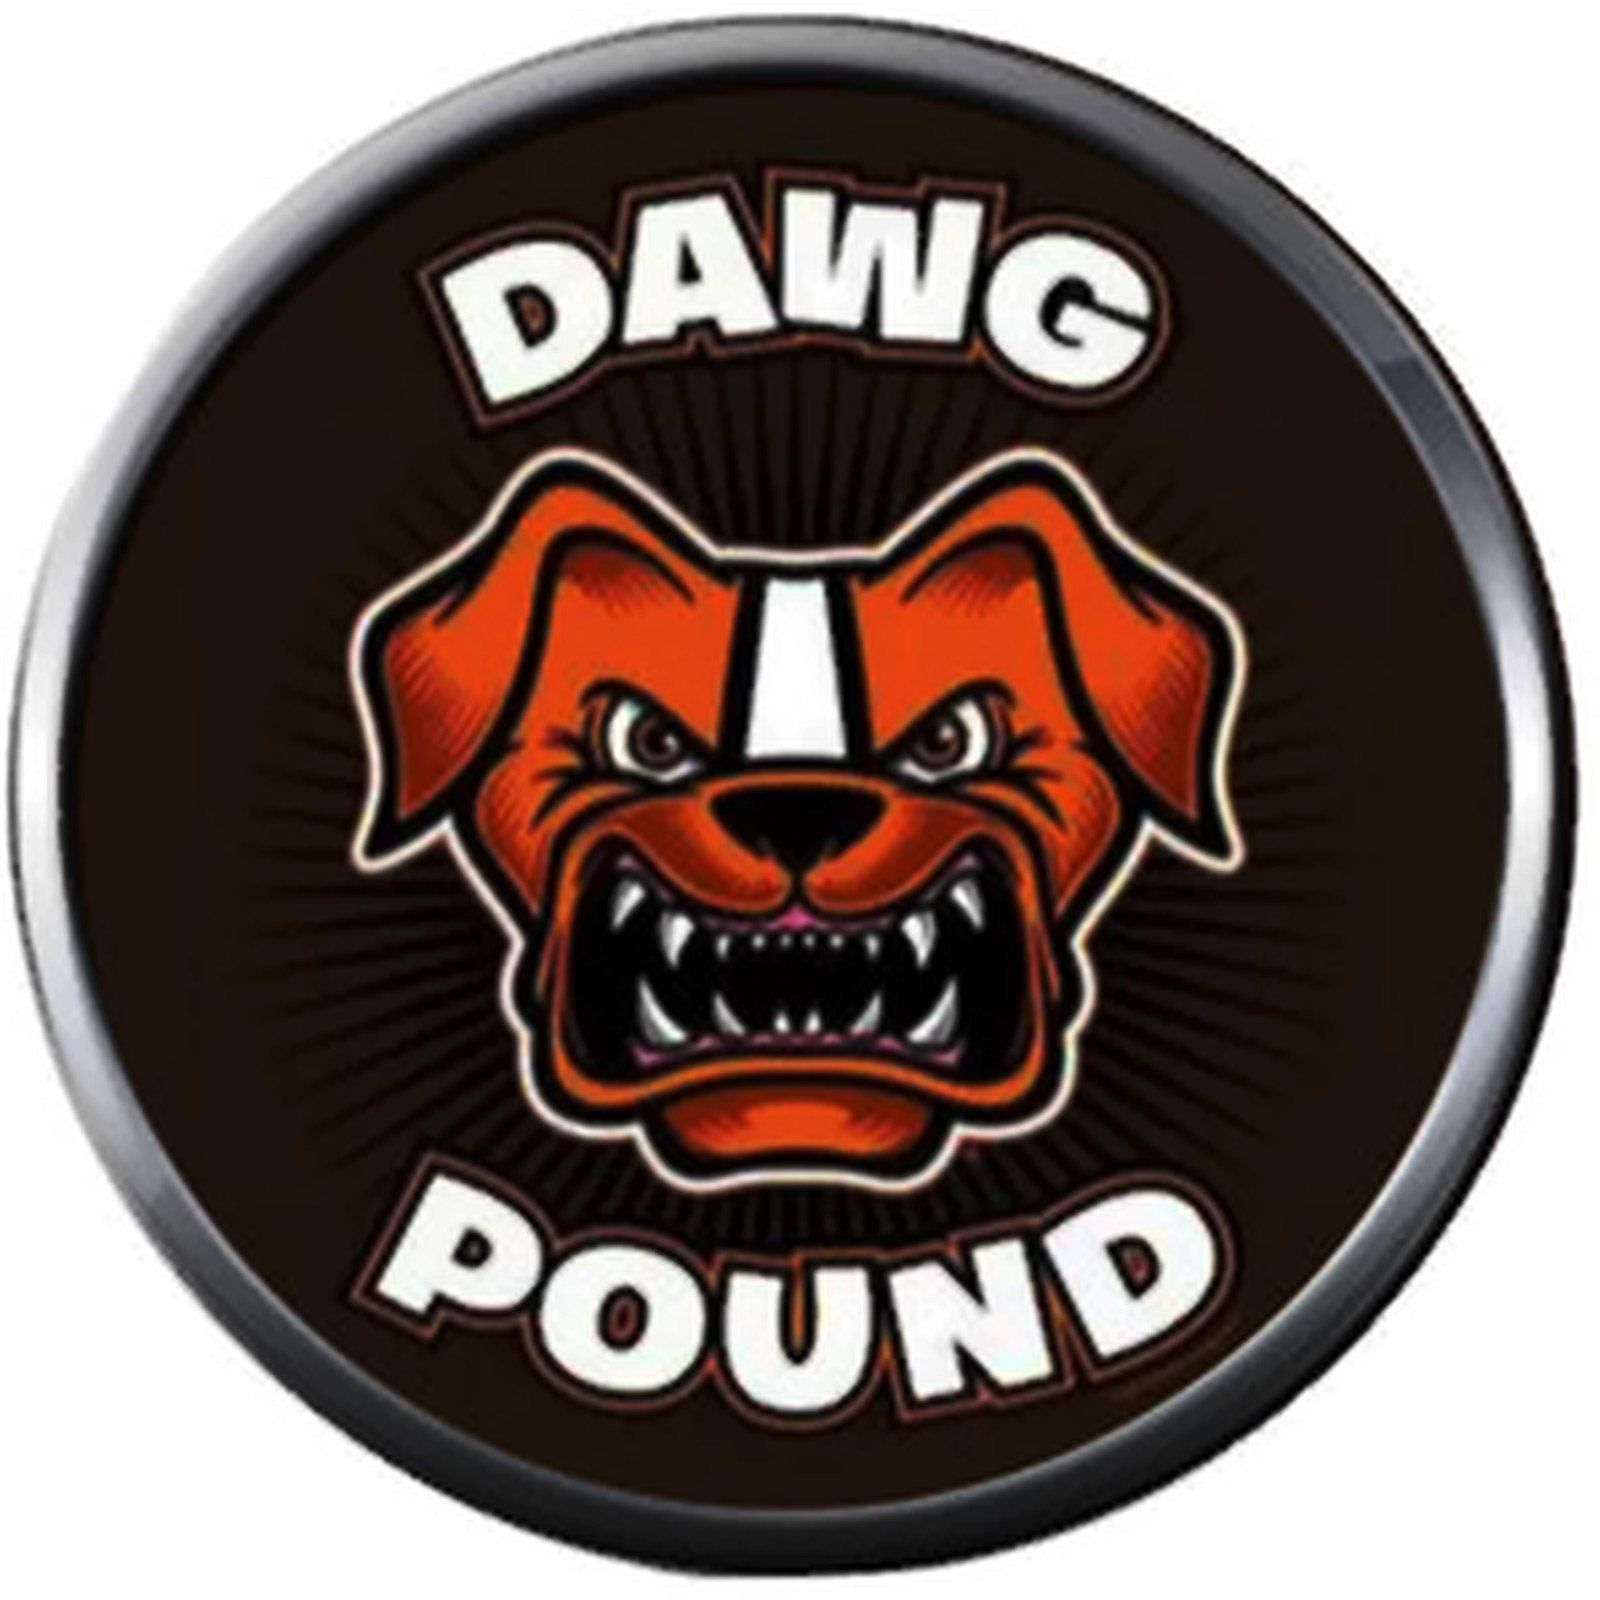 7ea8598e NFL Logo Cleveland Browns Dawg Pound in Brown Football Fan Team Spirit 18MM  - 20MM Fashion Jewelry Snap Charm